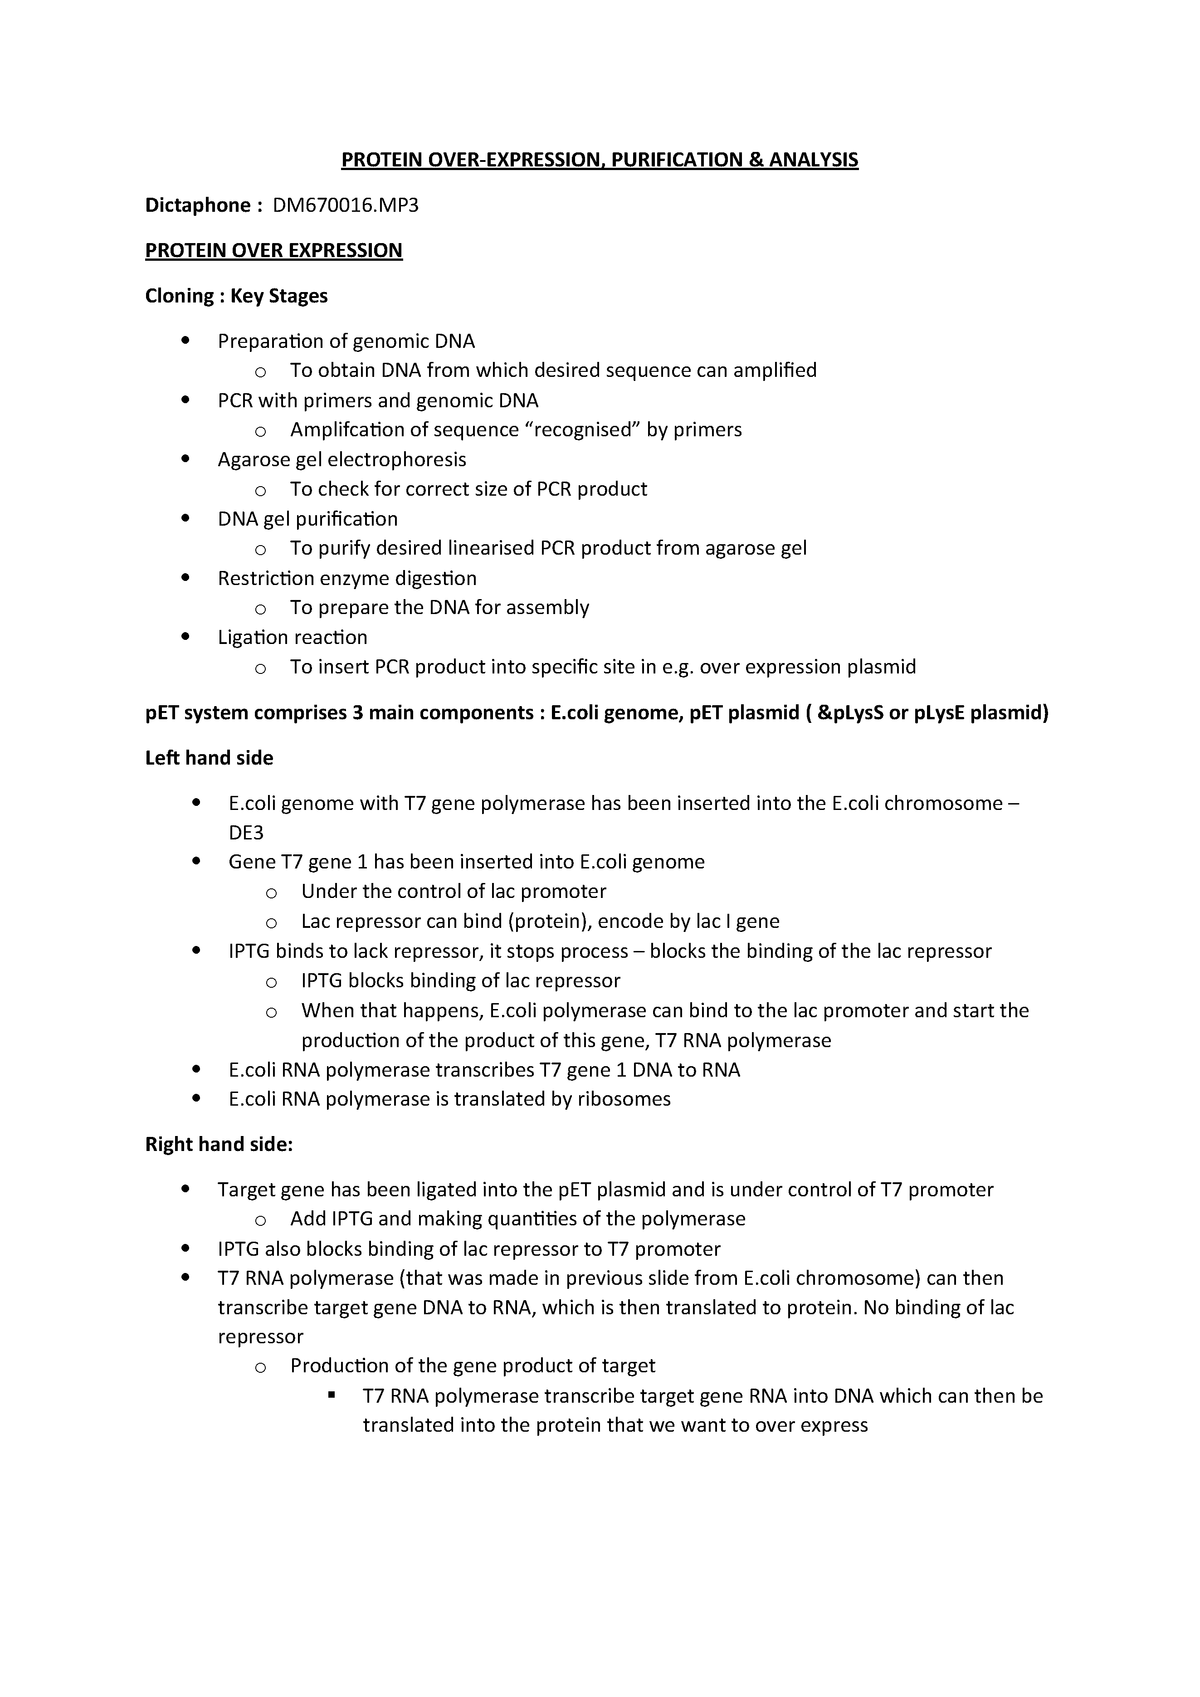 Lecture 5 Notes - Protein OE - BIOL4033: Core Skills in